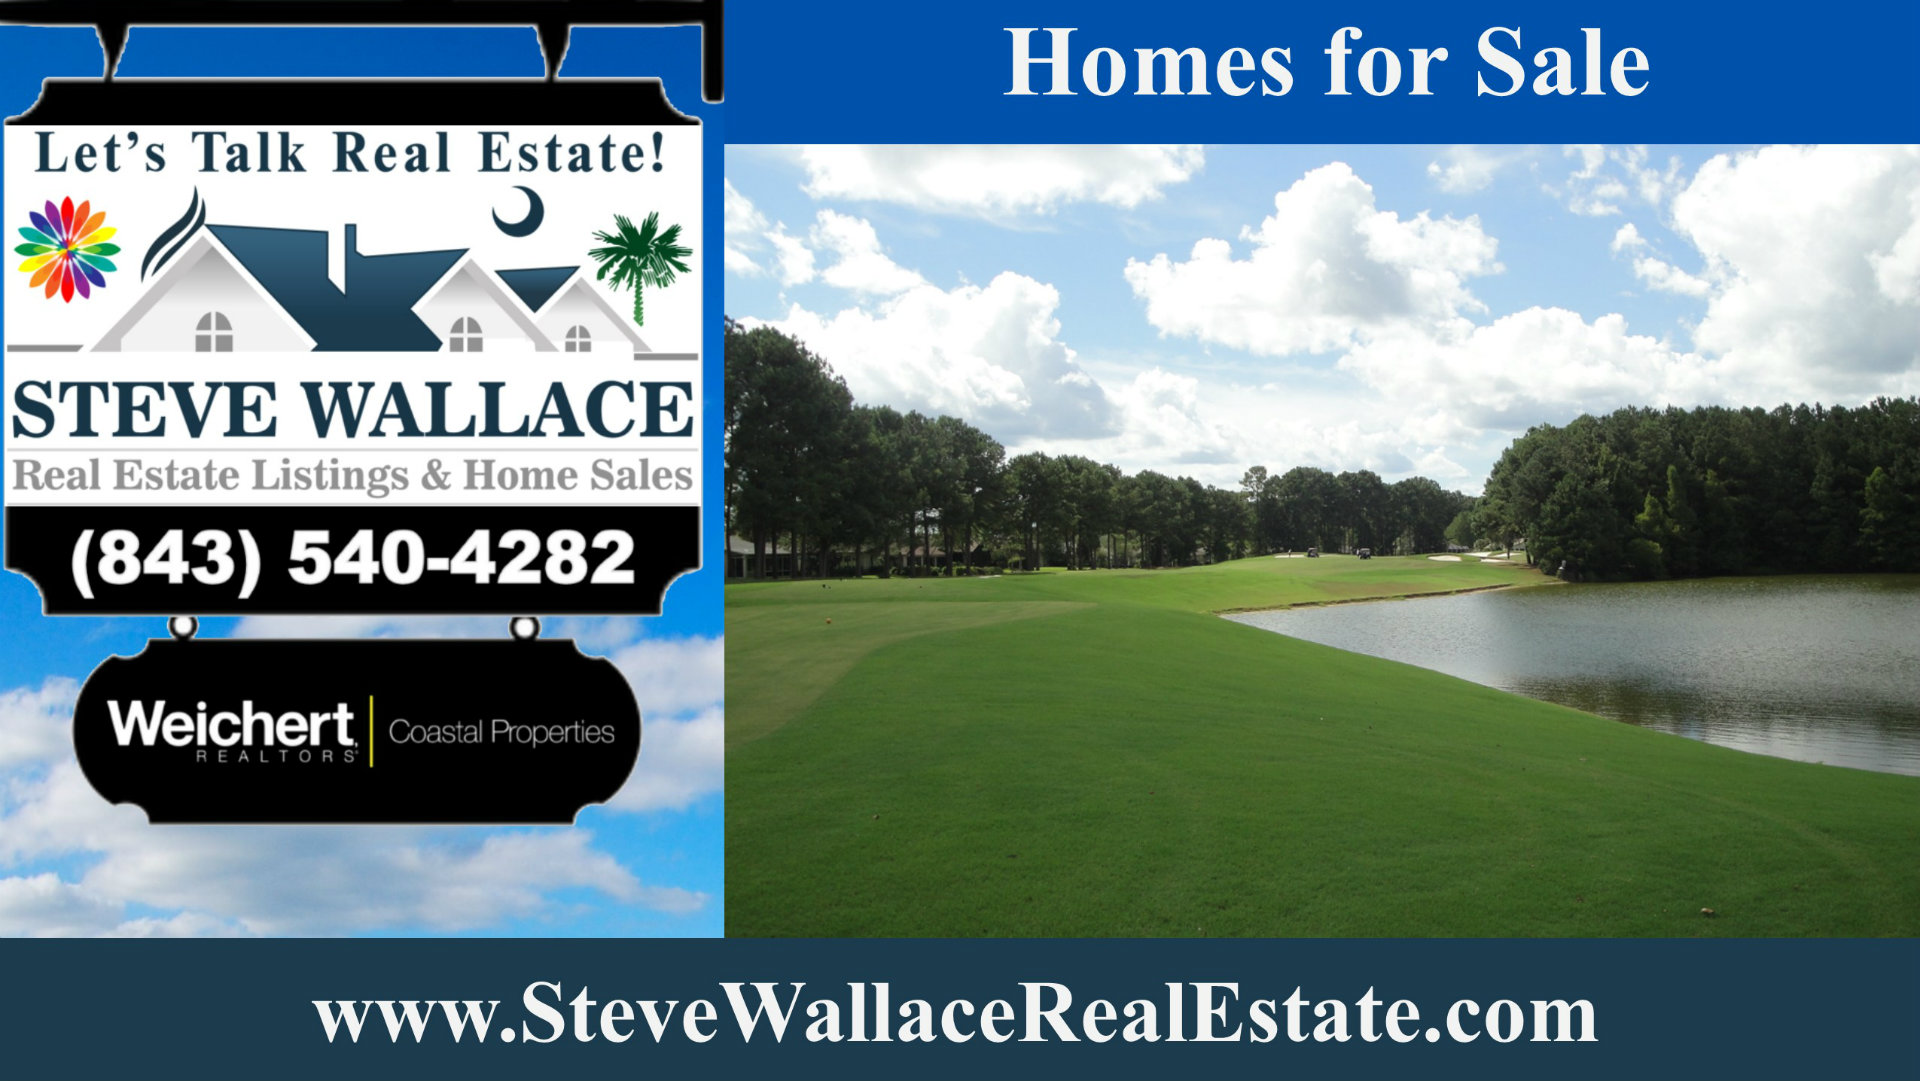 steve wallace sells sun city hilton head real estate, houses, villas